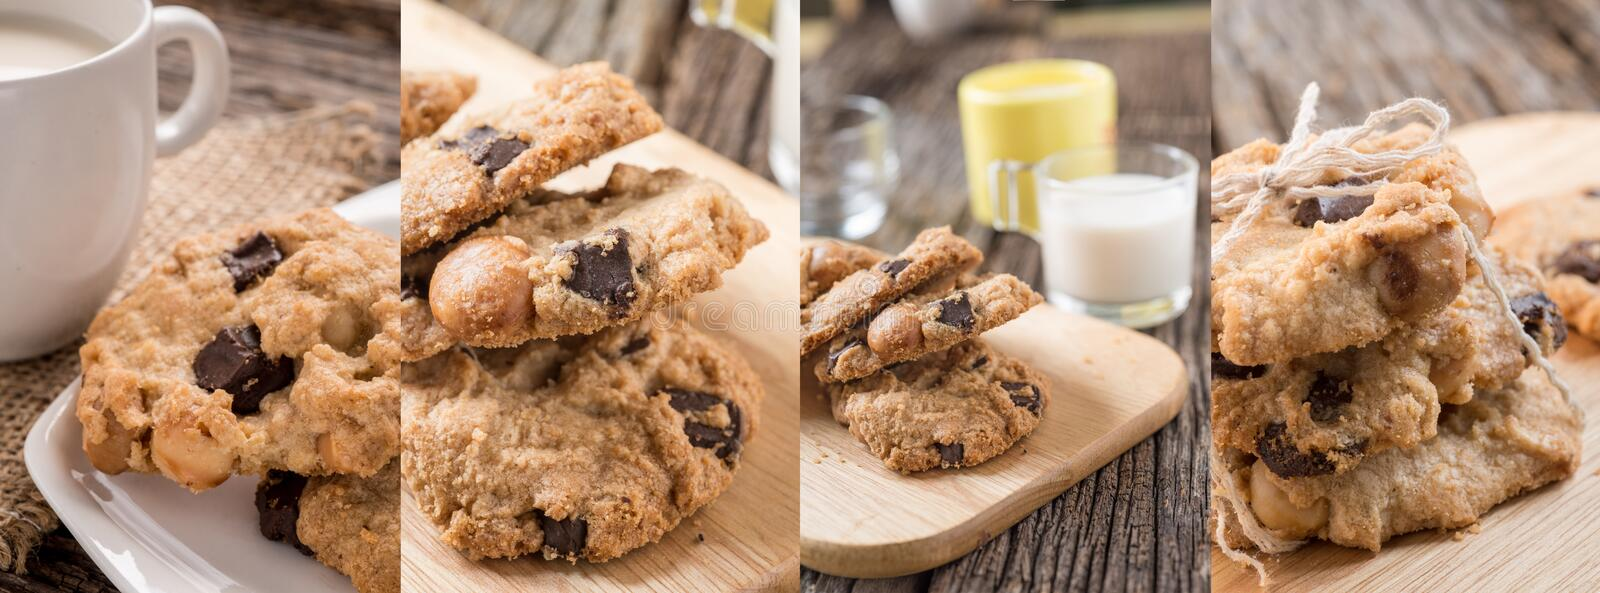 Collage photos of Cookies royalty free stock photos